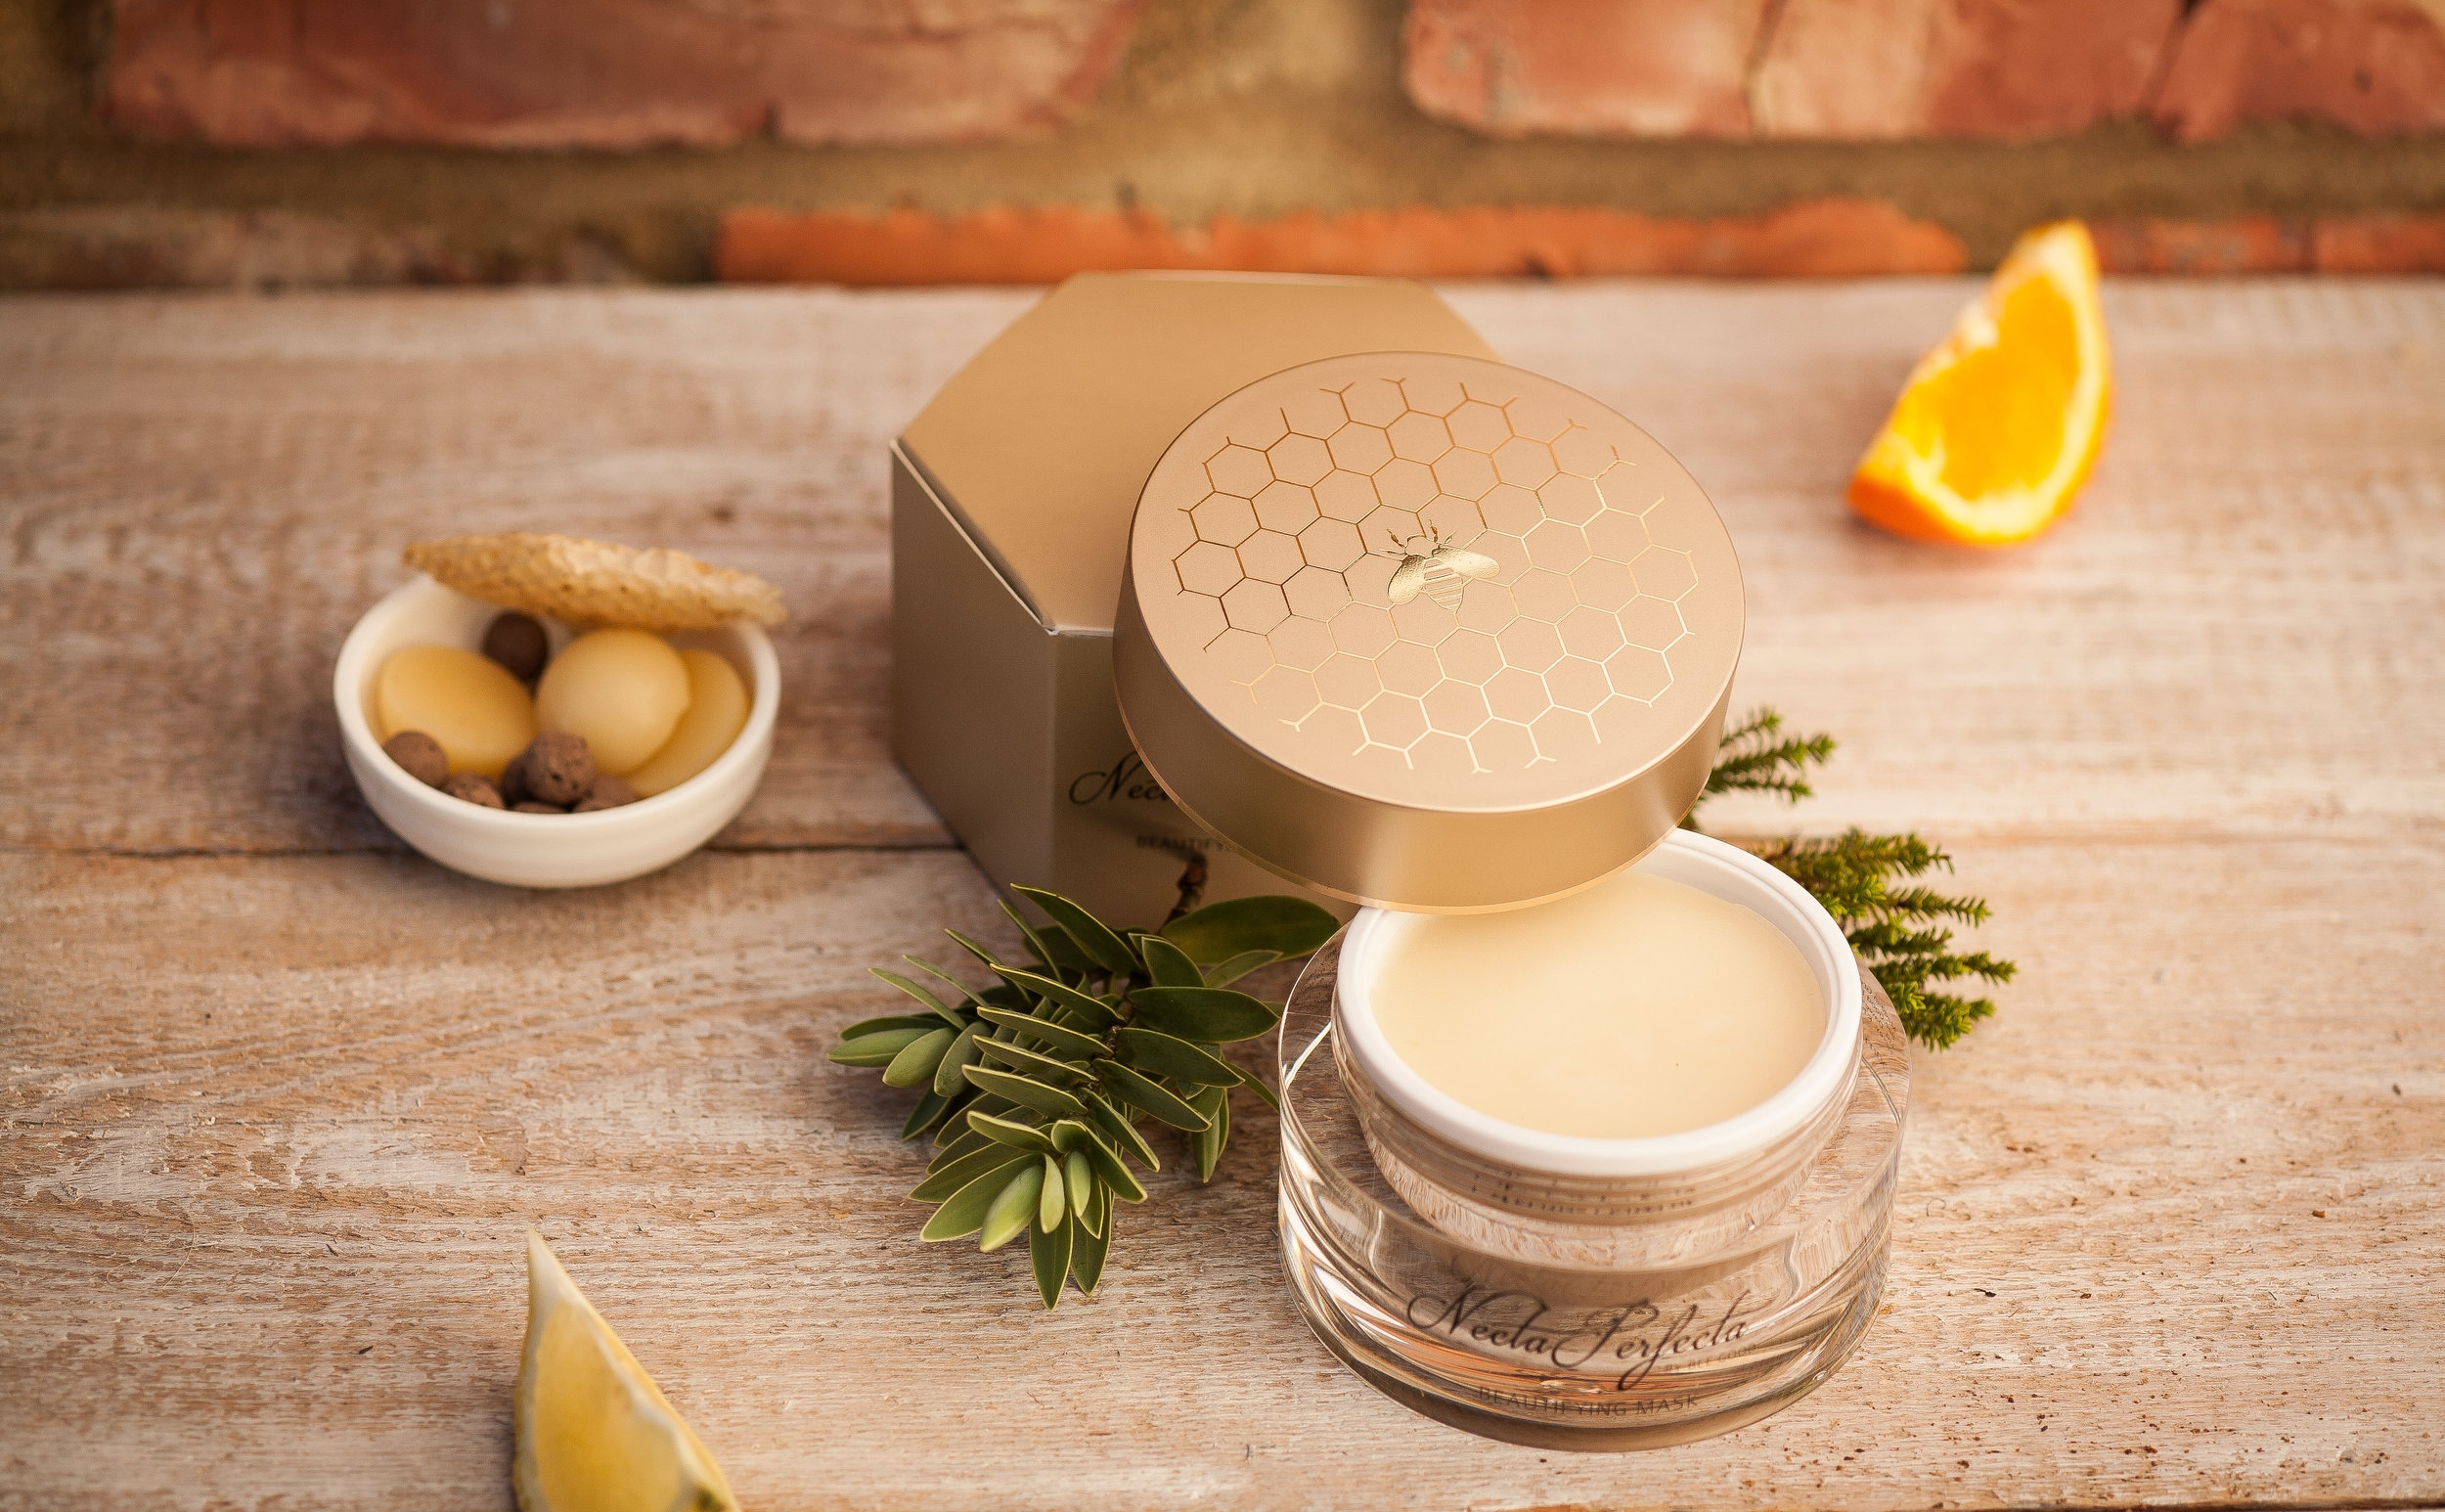 BEE GOOD - The only British premium skincare brand to exclusively use British beeswax, honey and propolis in all our products.